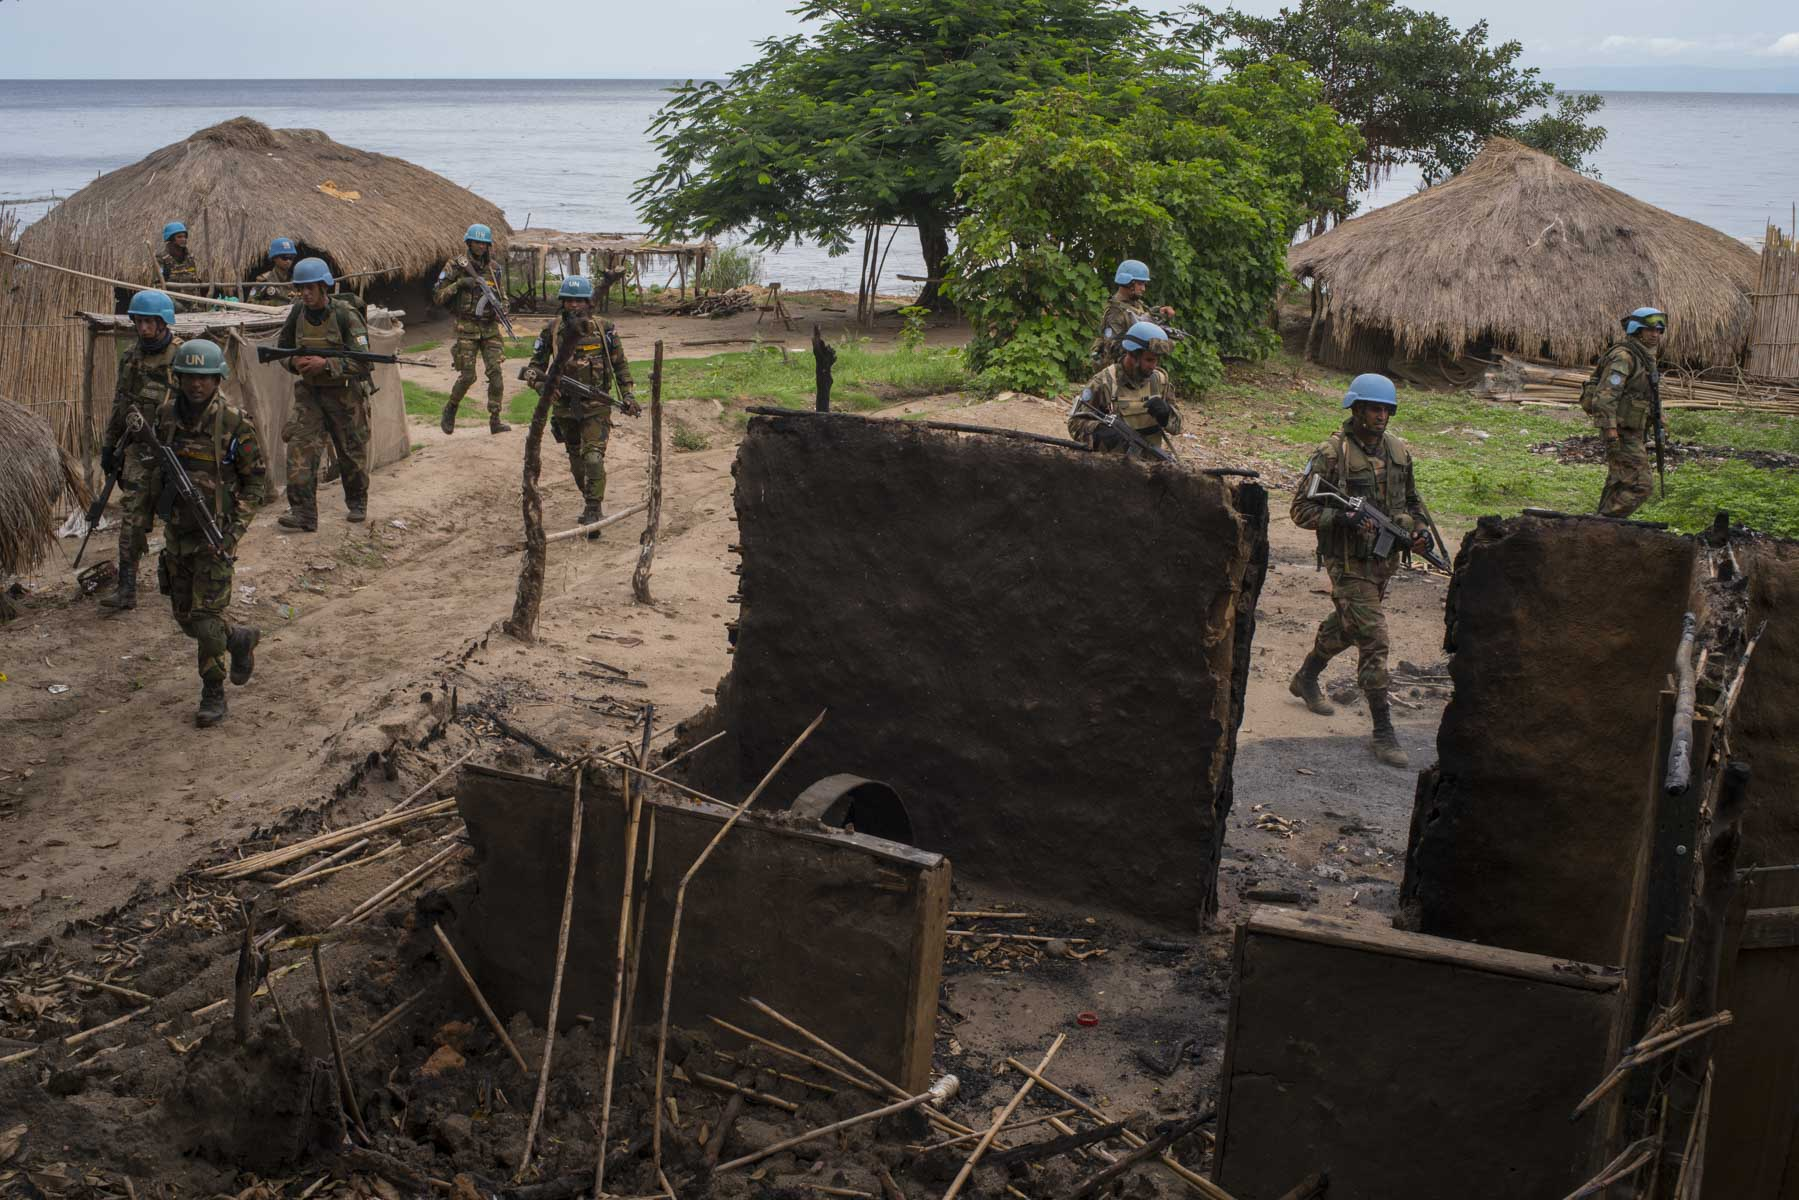 Soldiers from the Armed Forces of the DRC, and UN peacekeeprs from the Uruguyan and Bangladesh batallions move through Ghat, a deserted lakeside village that lies in ruins after attacks from militias less than a week prior. They have come here to meet six Uruguyan soldiers who after succeeding to reach Joo, a decimated village further up the coast, were stuck there for three days and nights, surrounded by militias. March 18, 2018. Ghat, Djugu territory, Ituri province, Democratic Republic of the Congo. Diana Zeyneb Alhindawi for The New York Times